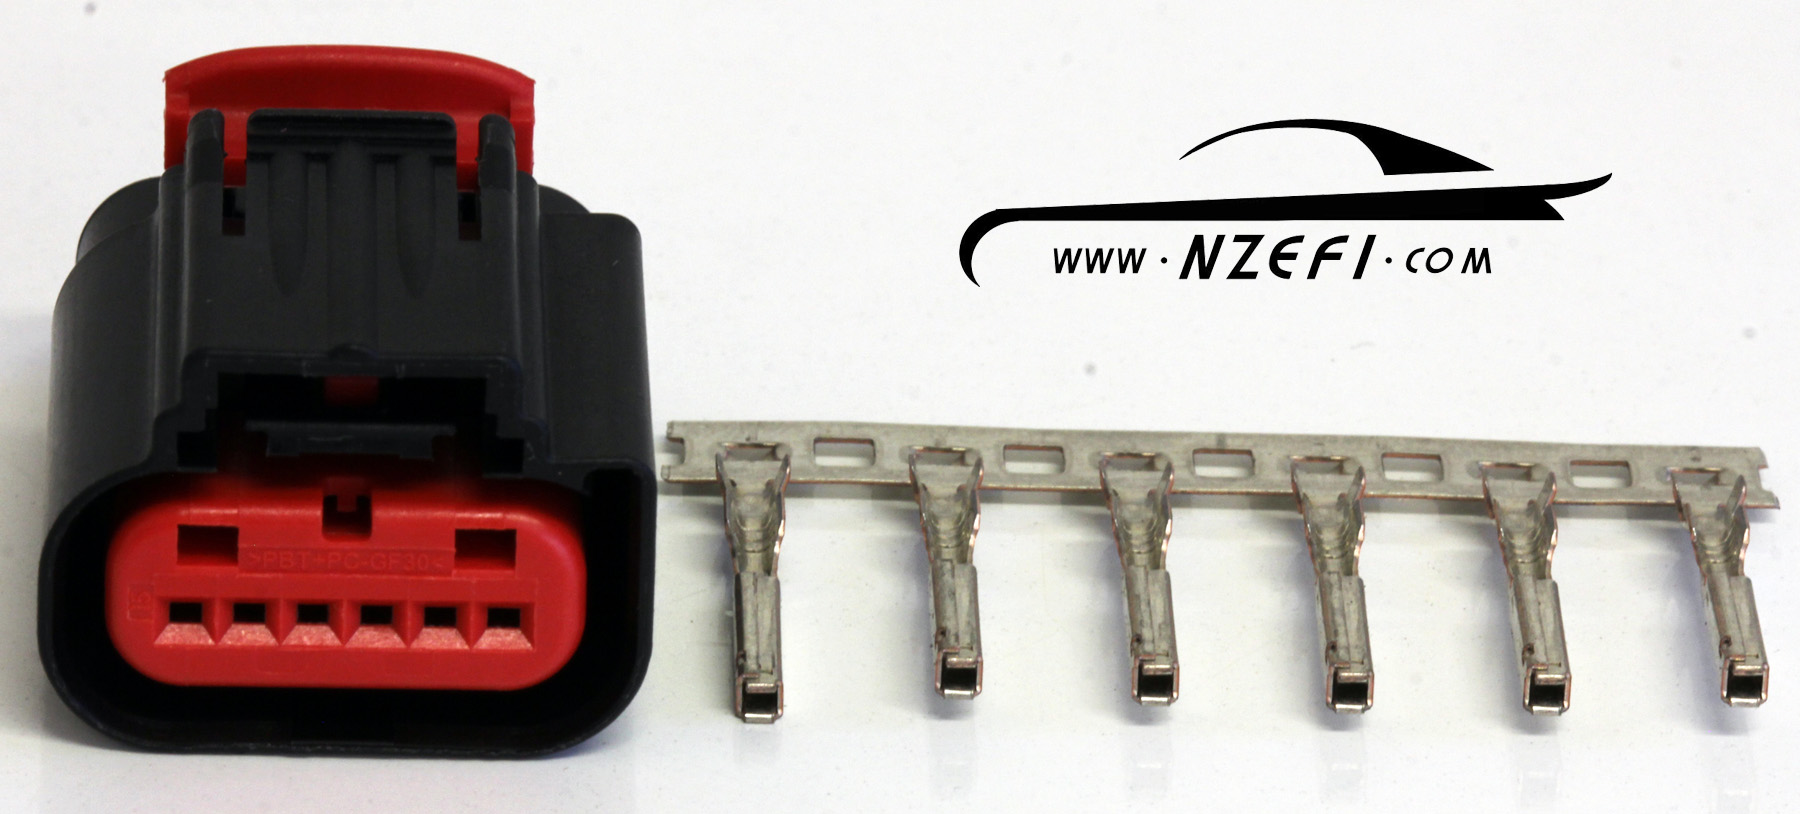 Ford Falcon Fg Drive By Wire Throttle Body Connector Nzefi Rb25det Tps Wiring Diagram